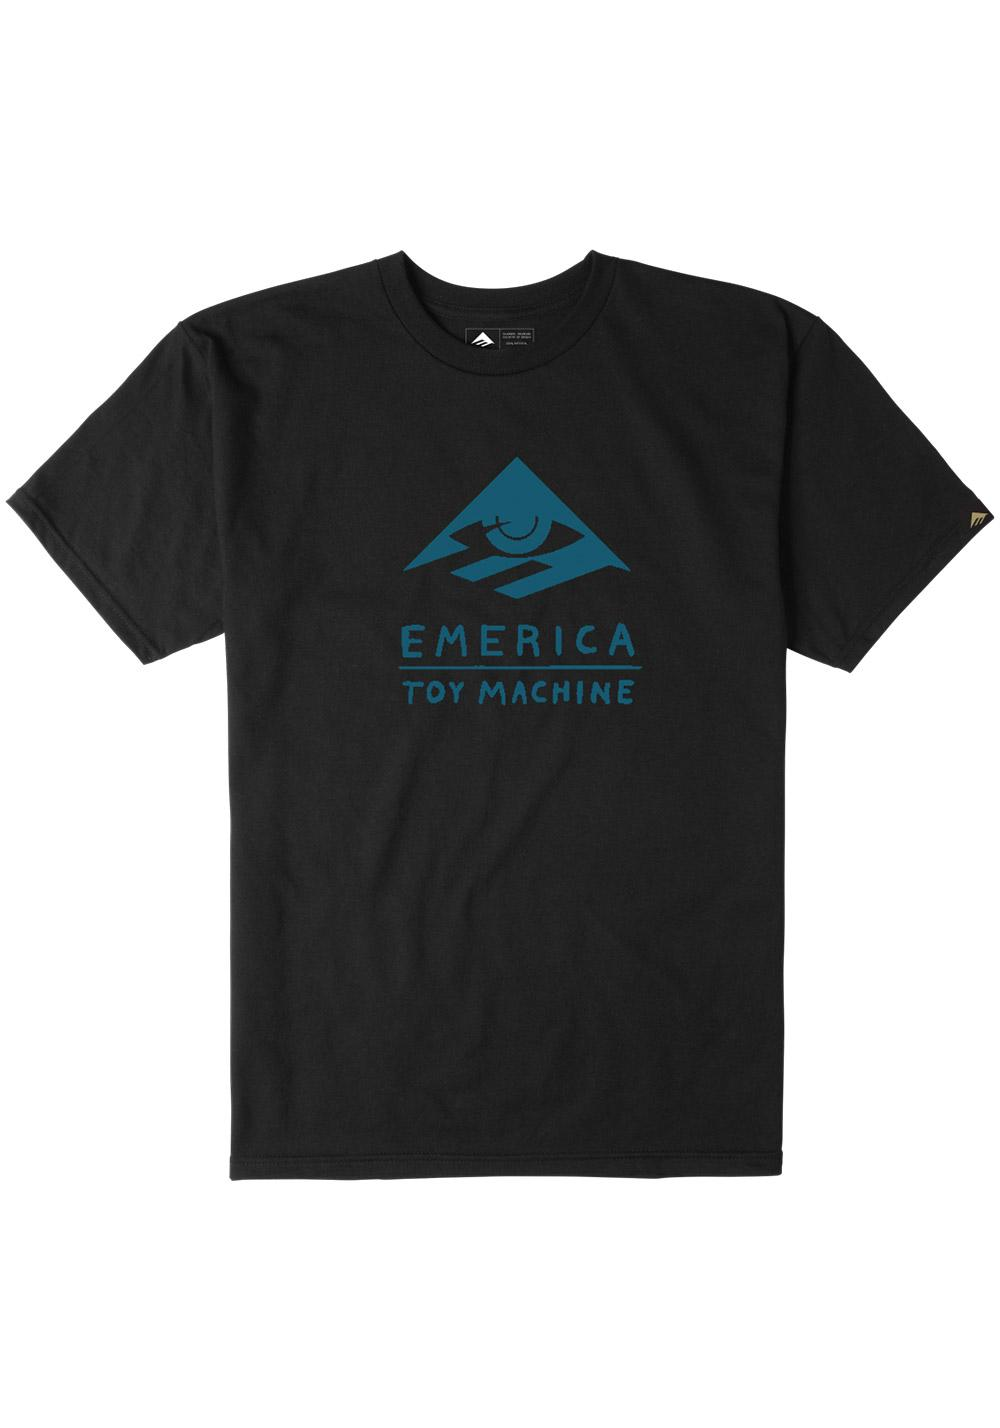 T-Shirt Emerica x Toy Machine